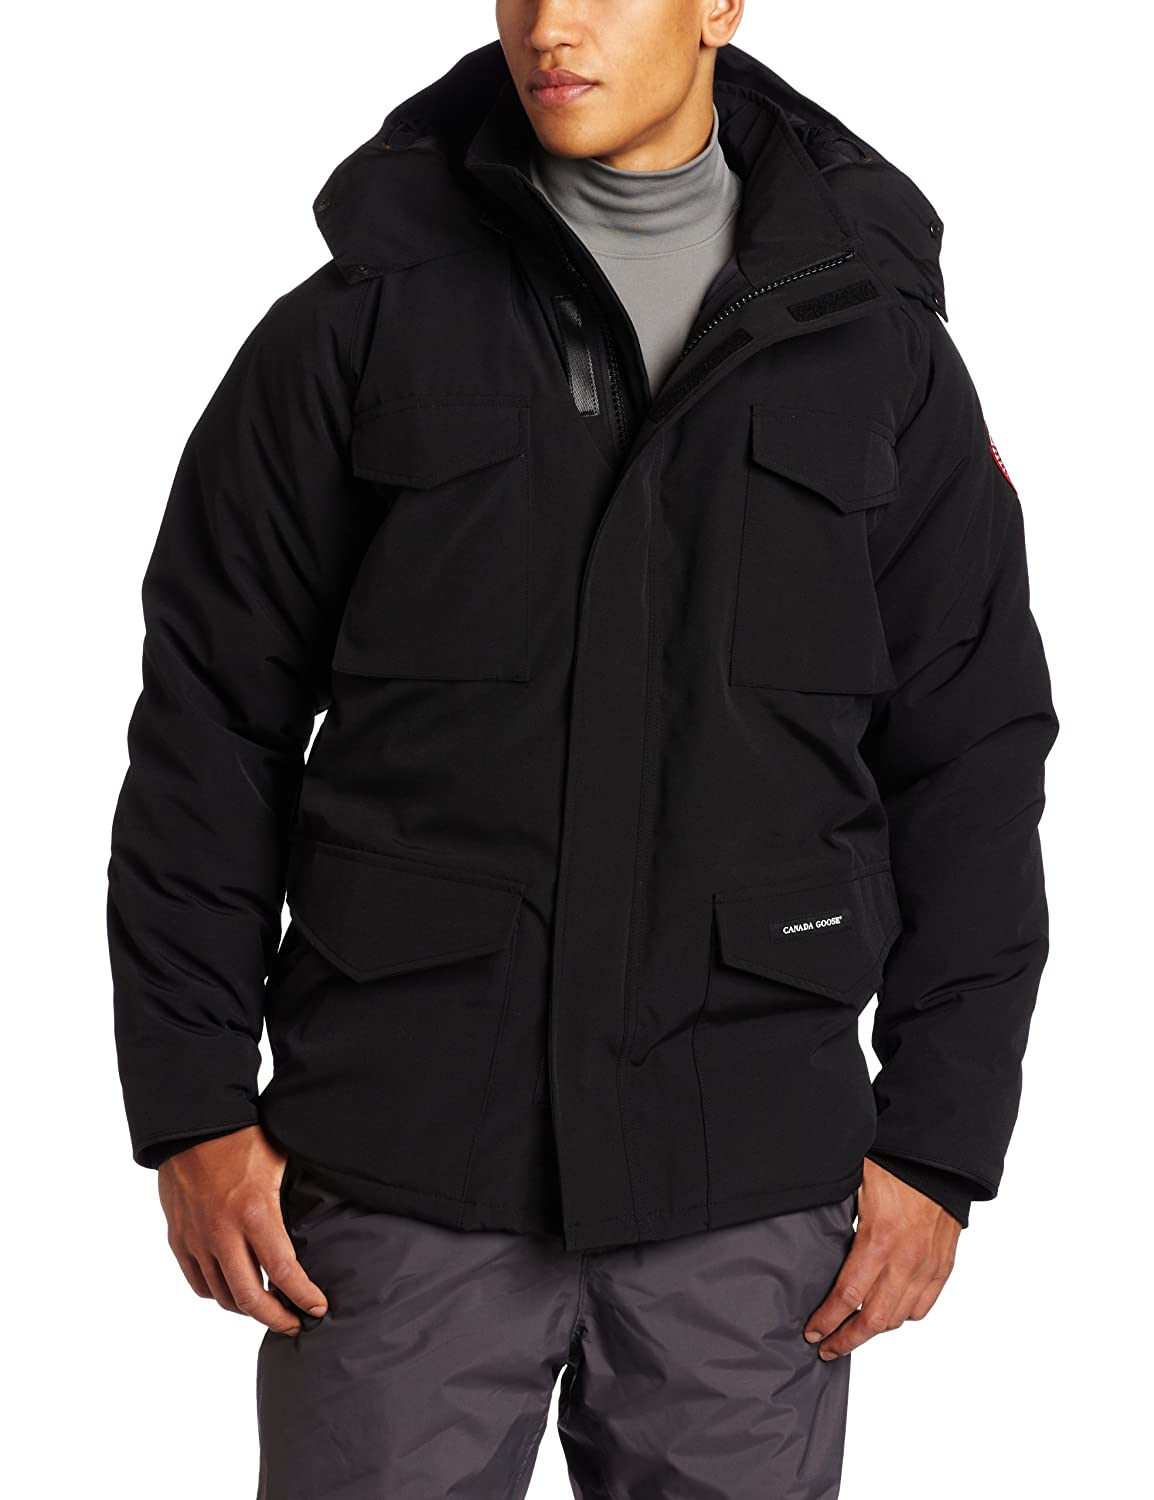 Cheap Canada Goose Outlet Sale | Goose You